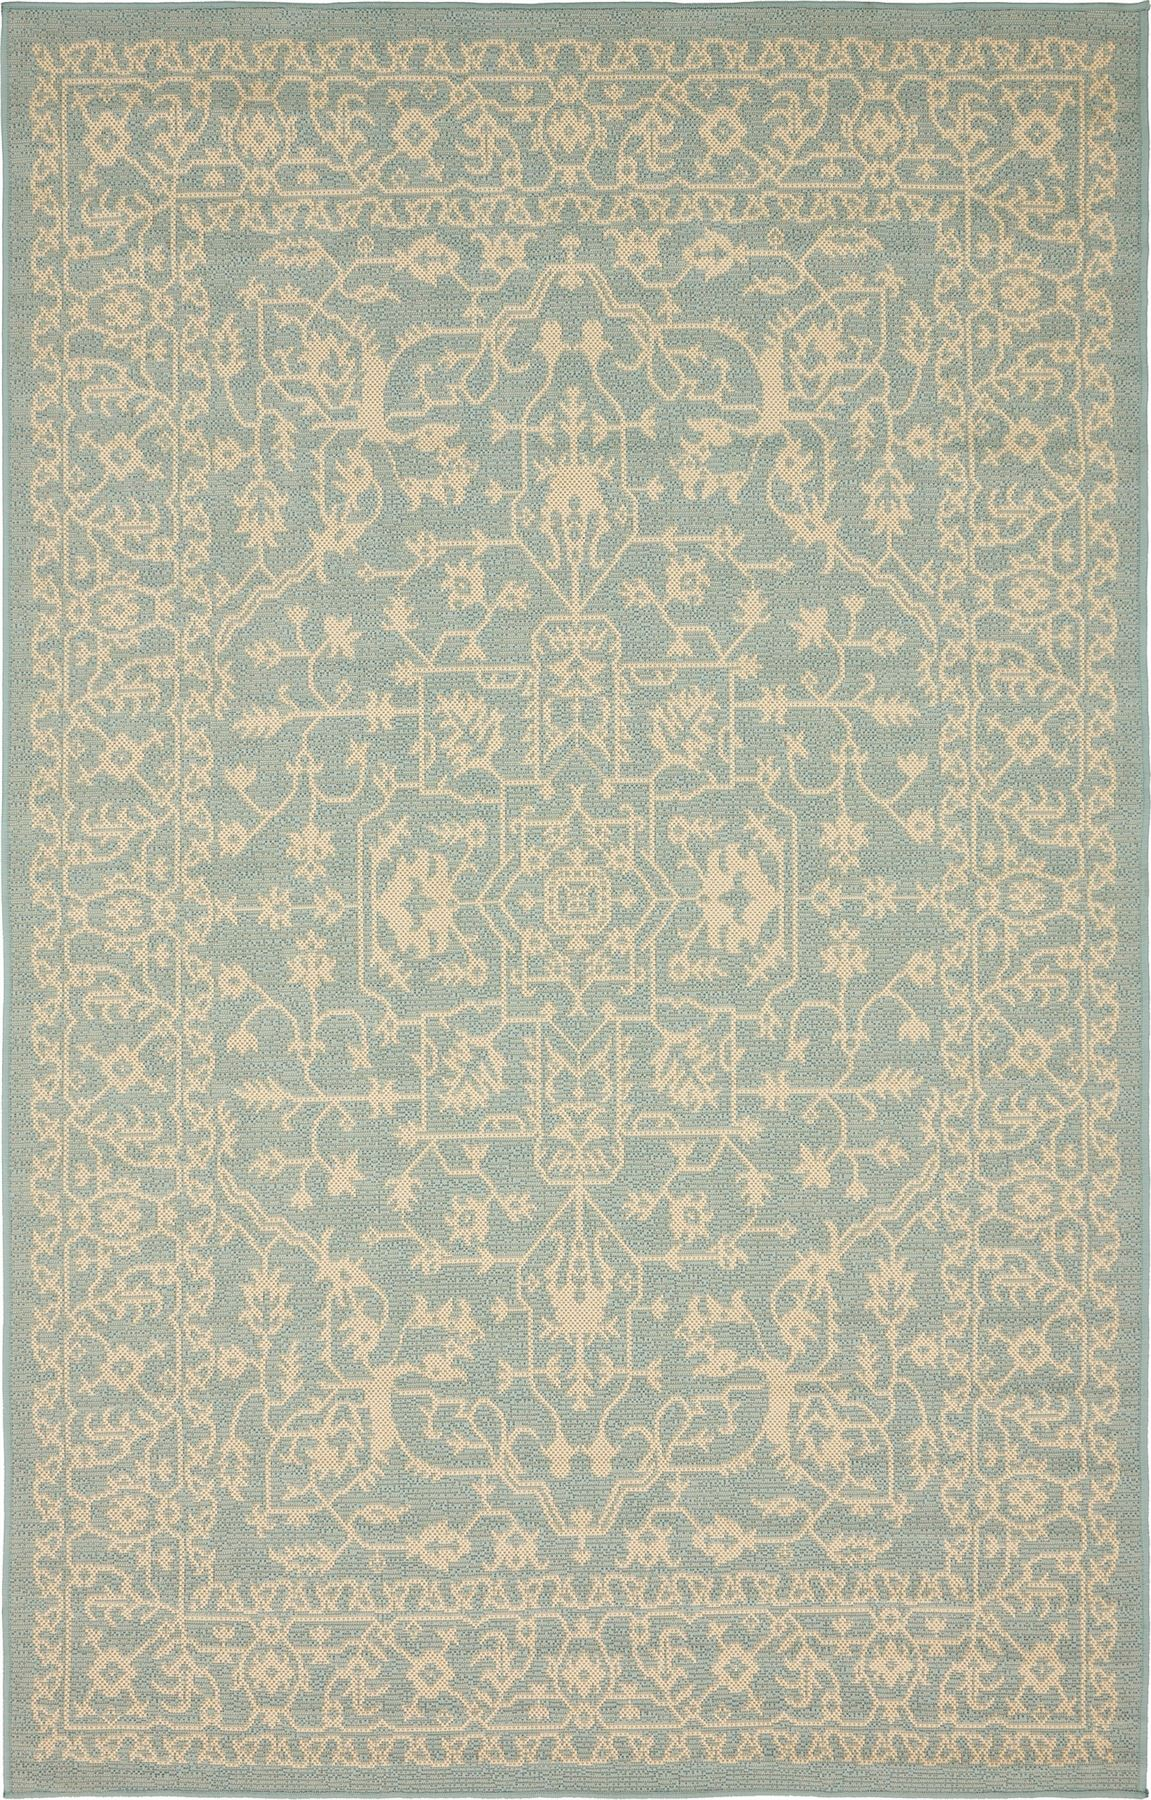 Medallion Style Floor Rugs Traditional Carpet Floral Rug